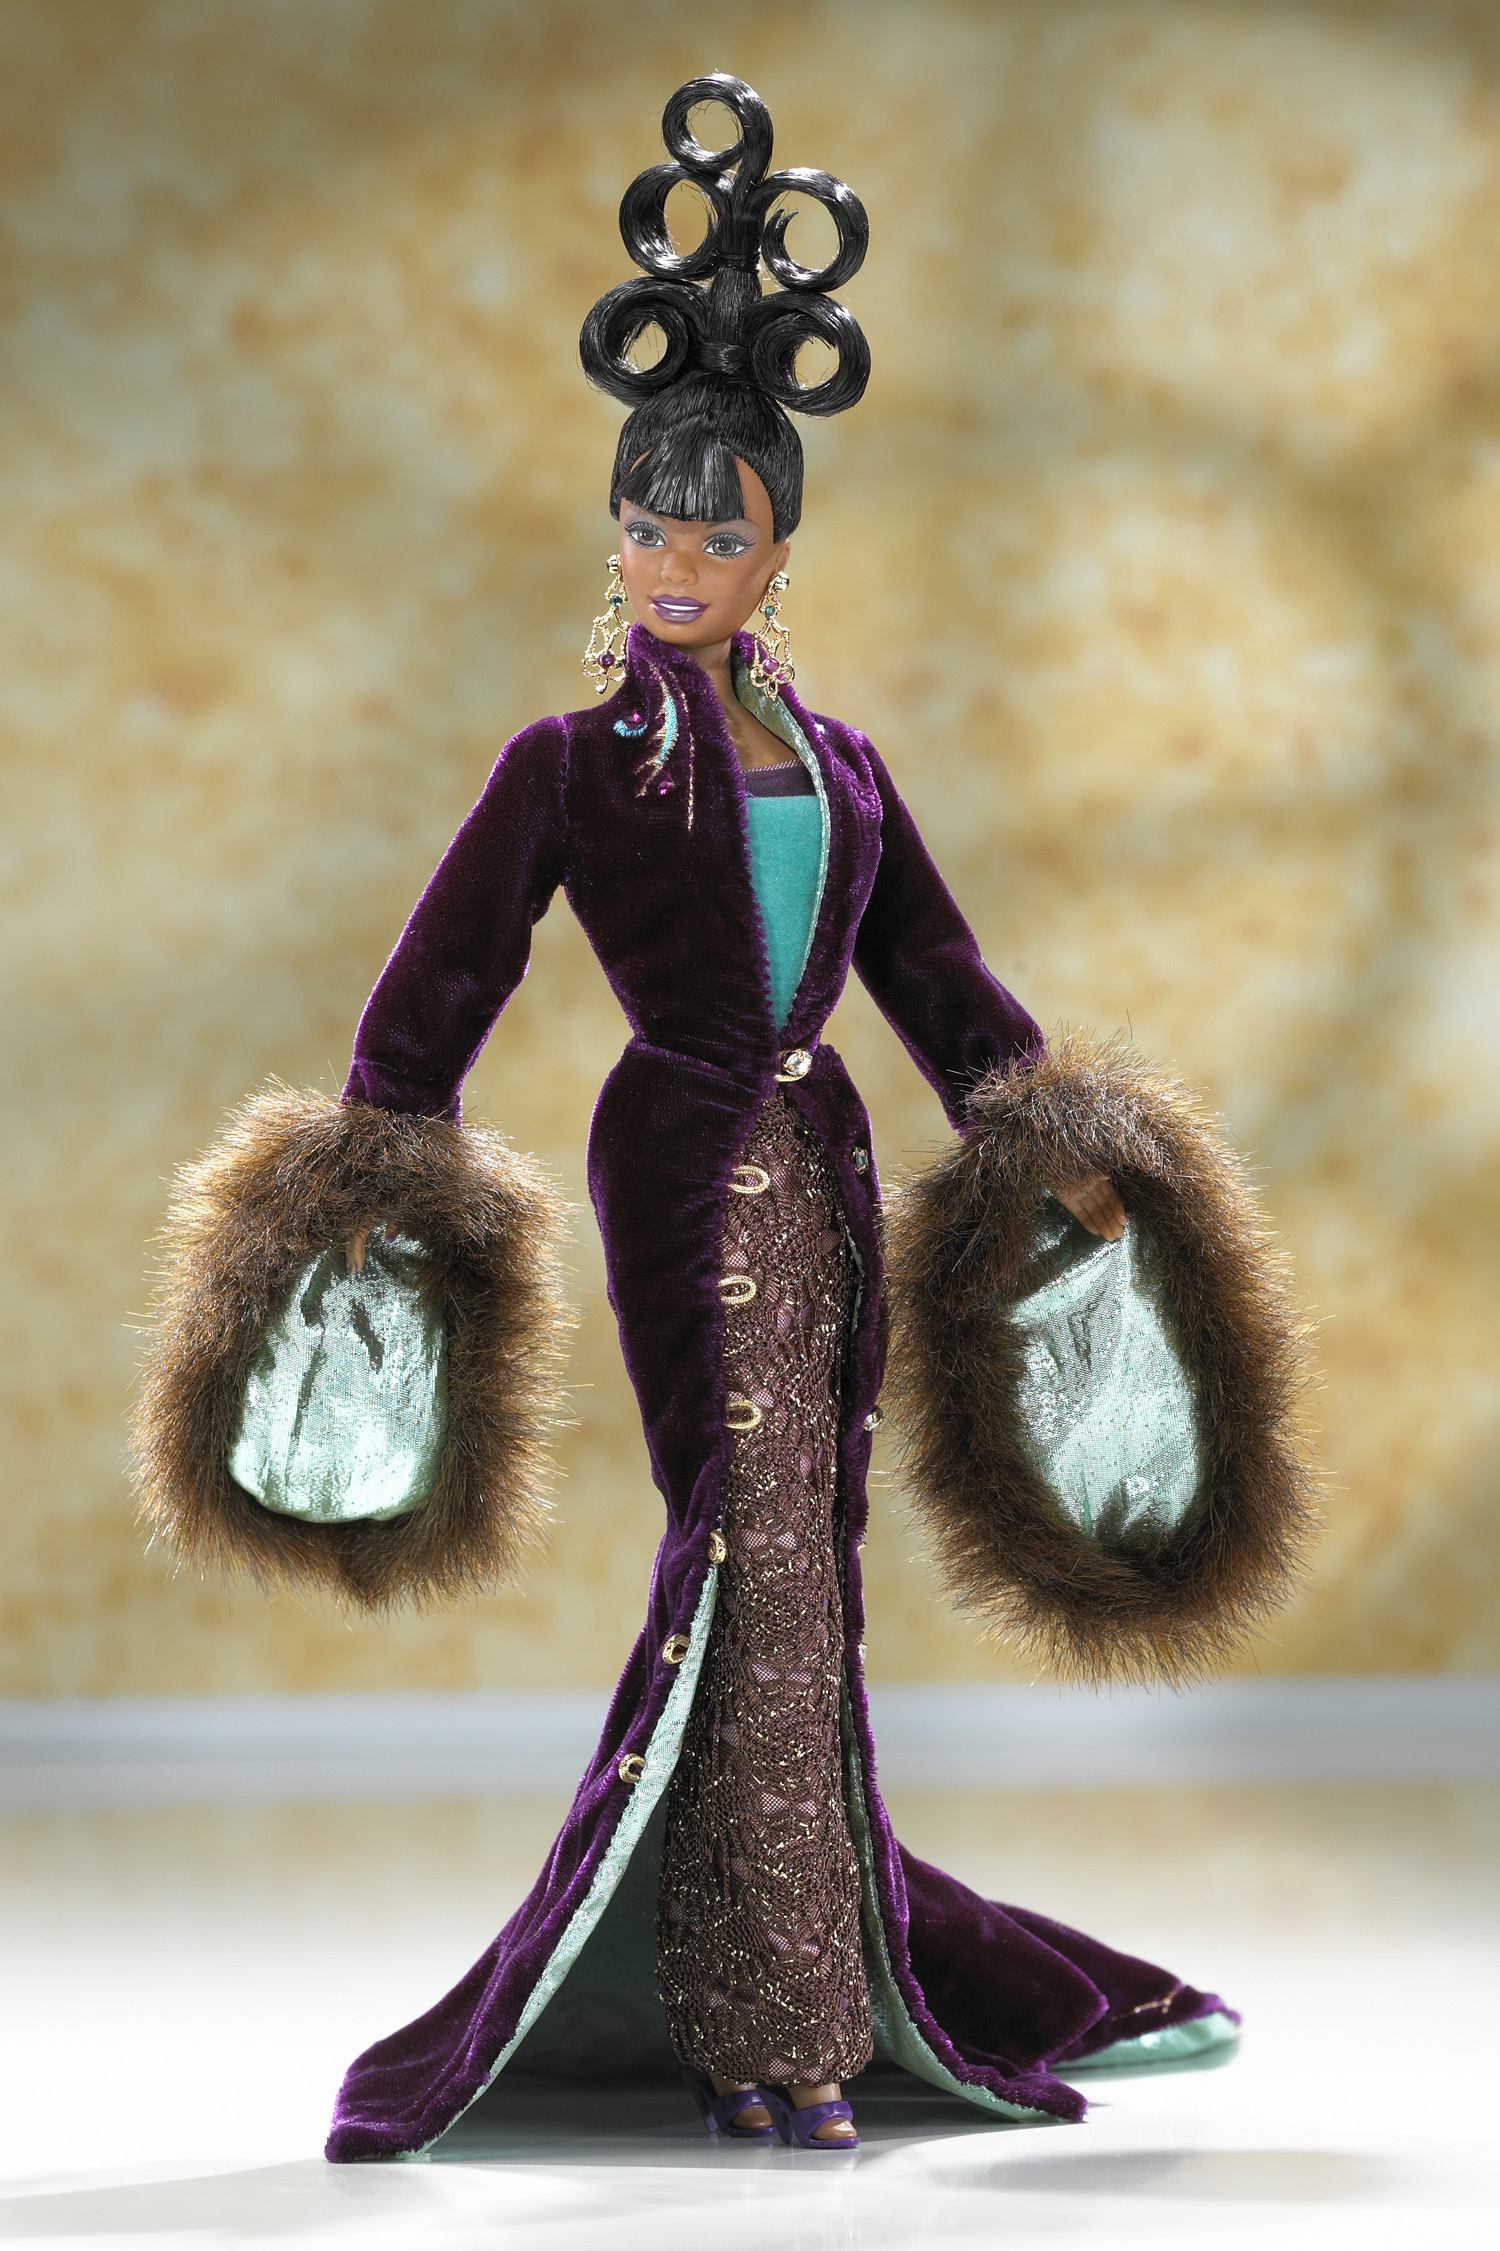 The Byron Lars Plum Royale Barbie Doll, released in 1999.